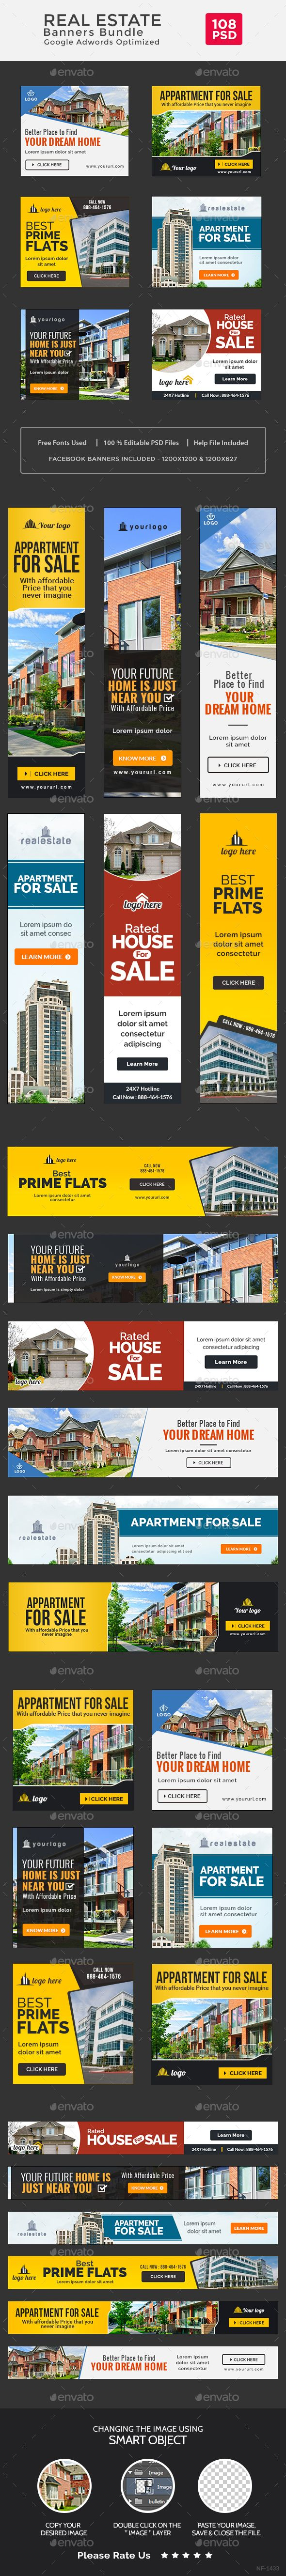 Real Estate Banners Bundle - 6 Sets - 108 Banners Templates PSD. Download here: https://graphicriver.net/item/real-estate-banners-bundle-6-sets-108-banners/17164937?ref=ksioks